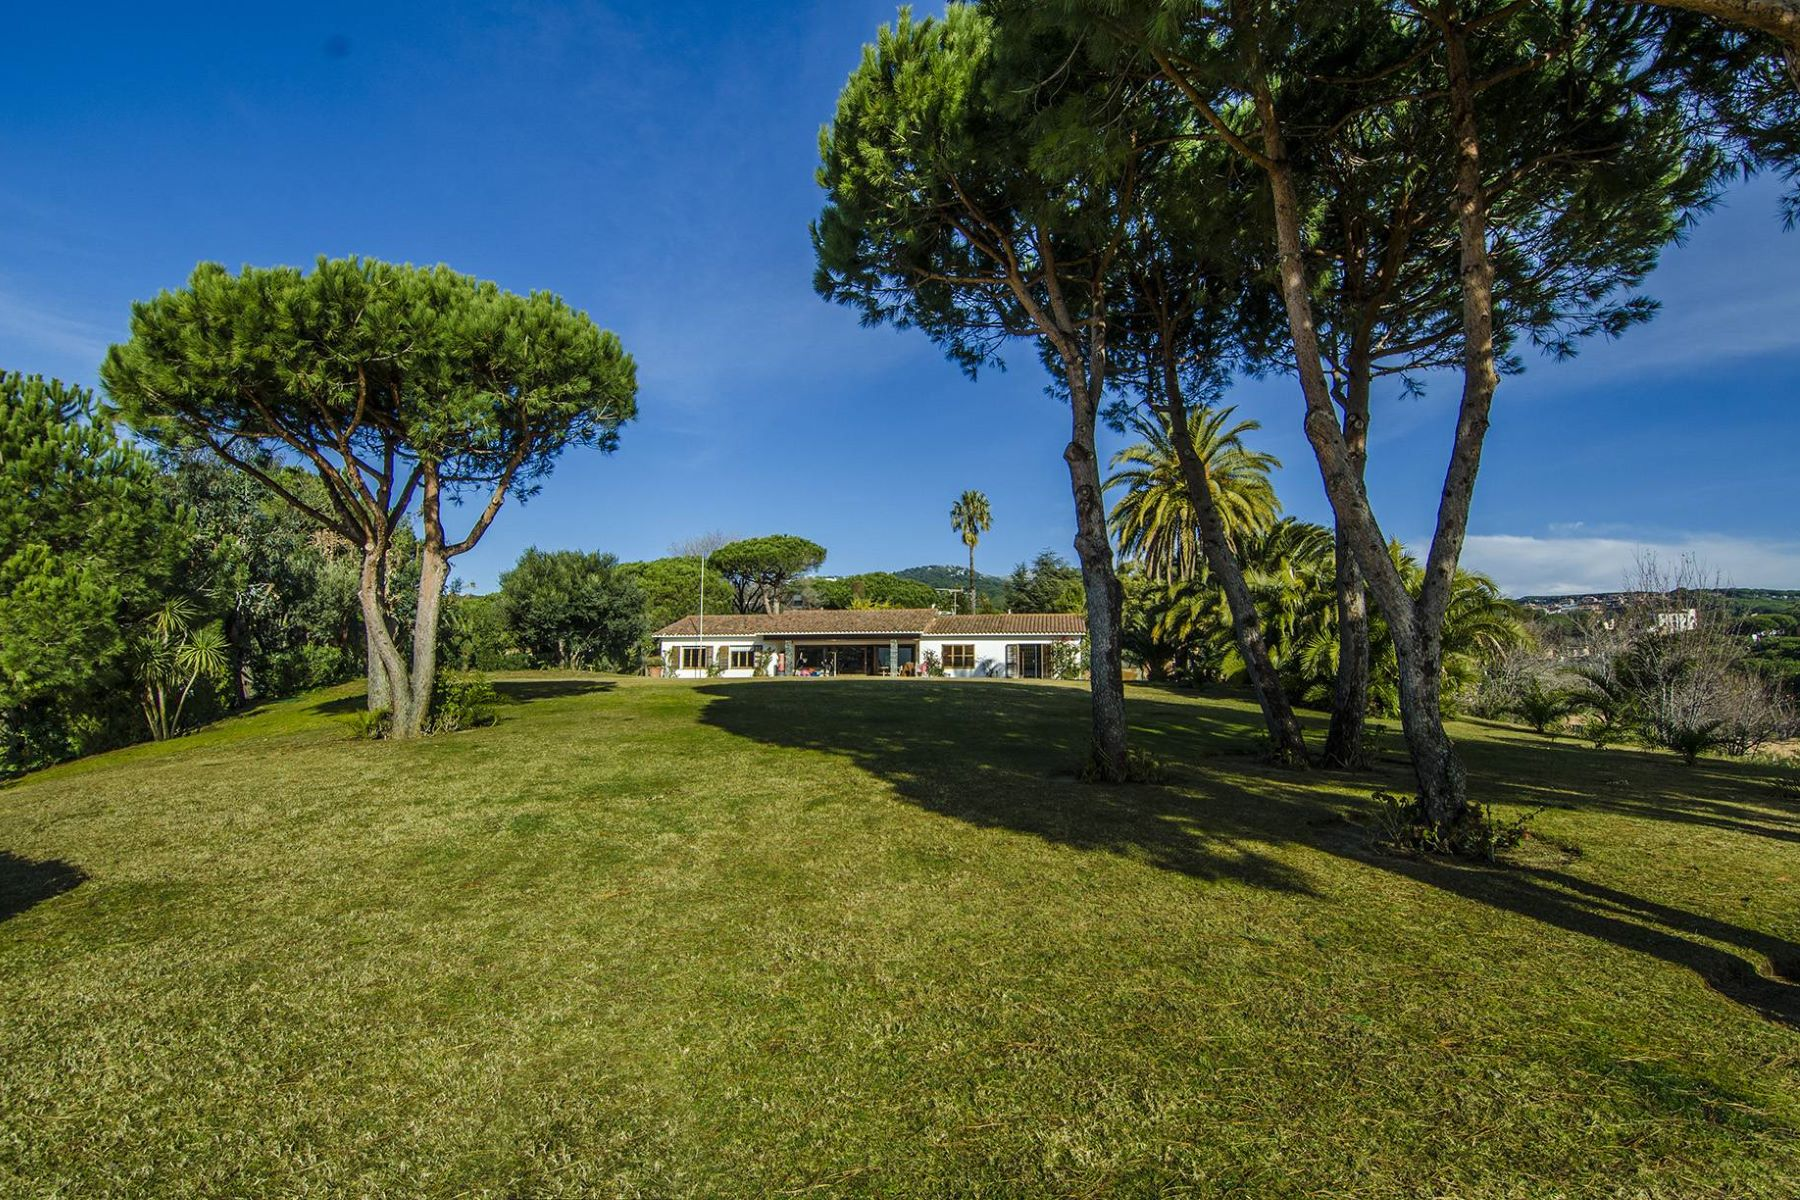 Single Family Home for Sale at Golf, Sun, Sea, and Blue Skies in Sant Vicente de Montalt Sant Andreu De Llavaneres, Barcelona, 08392 Spain